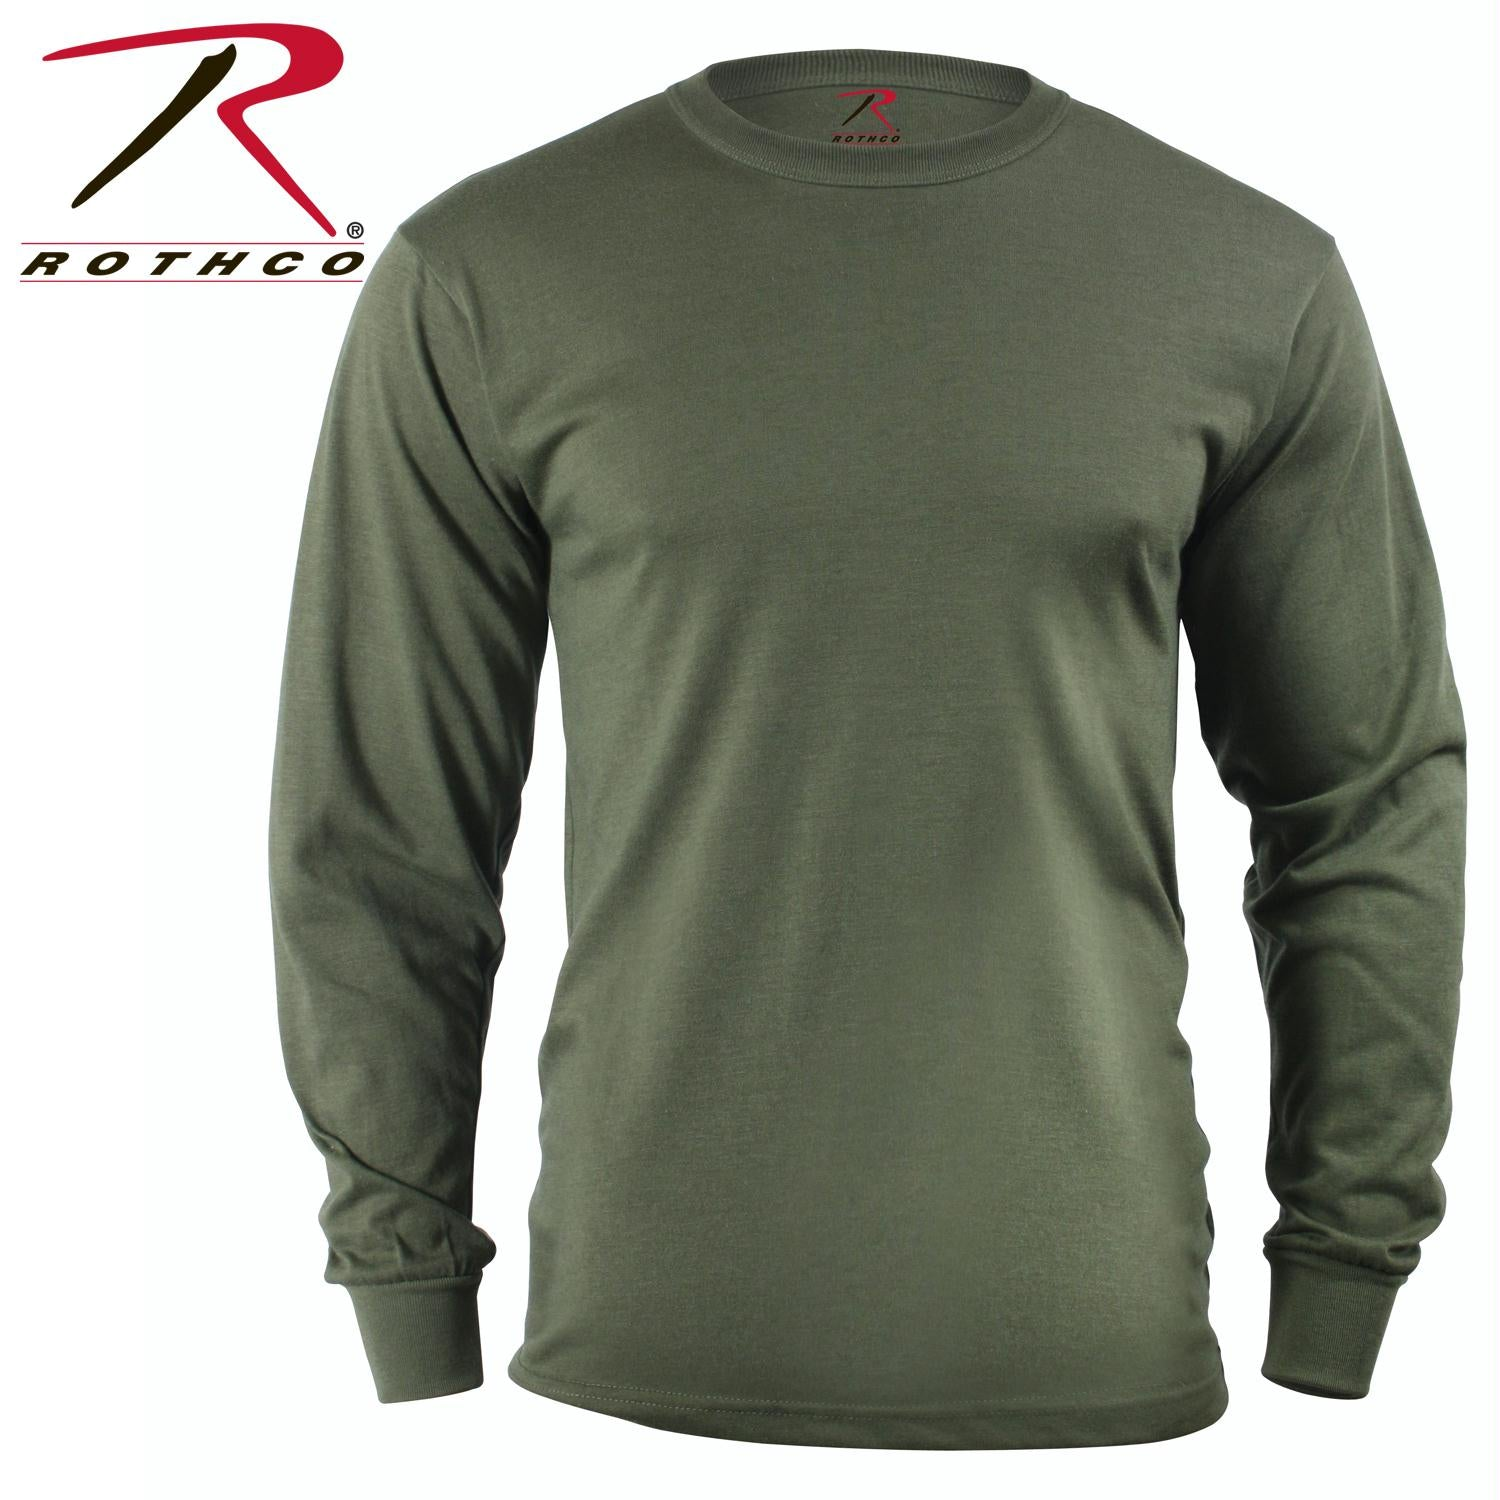 Rothco Long Sleeve Solid T-Shirt - Olive Drab / 3XL